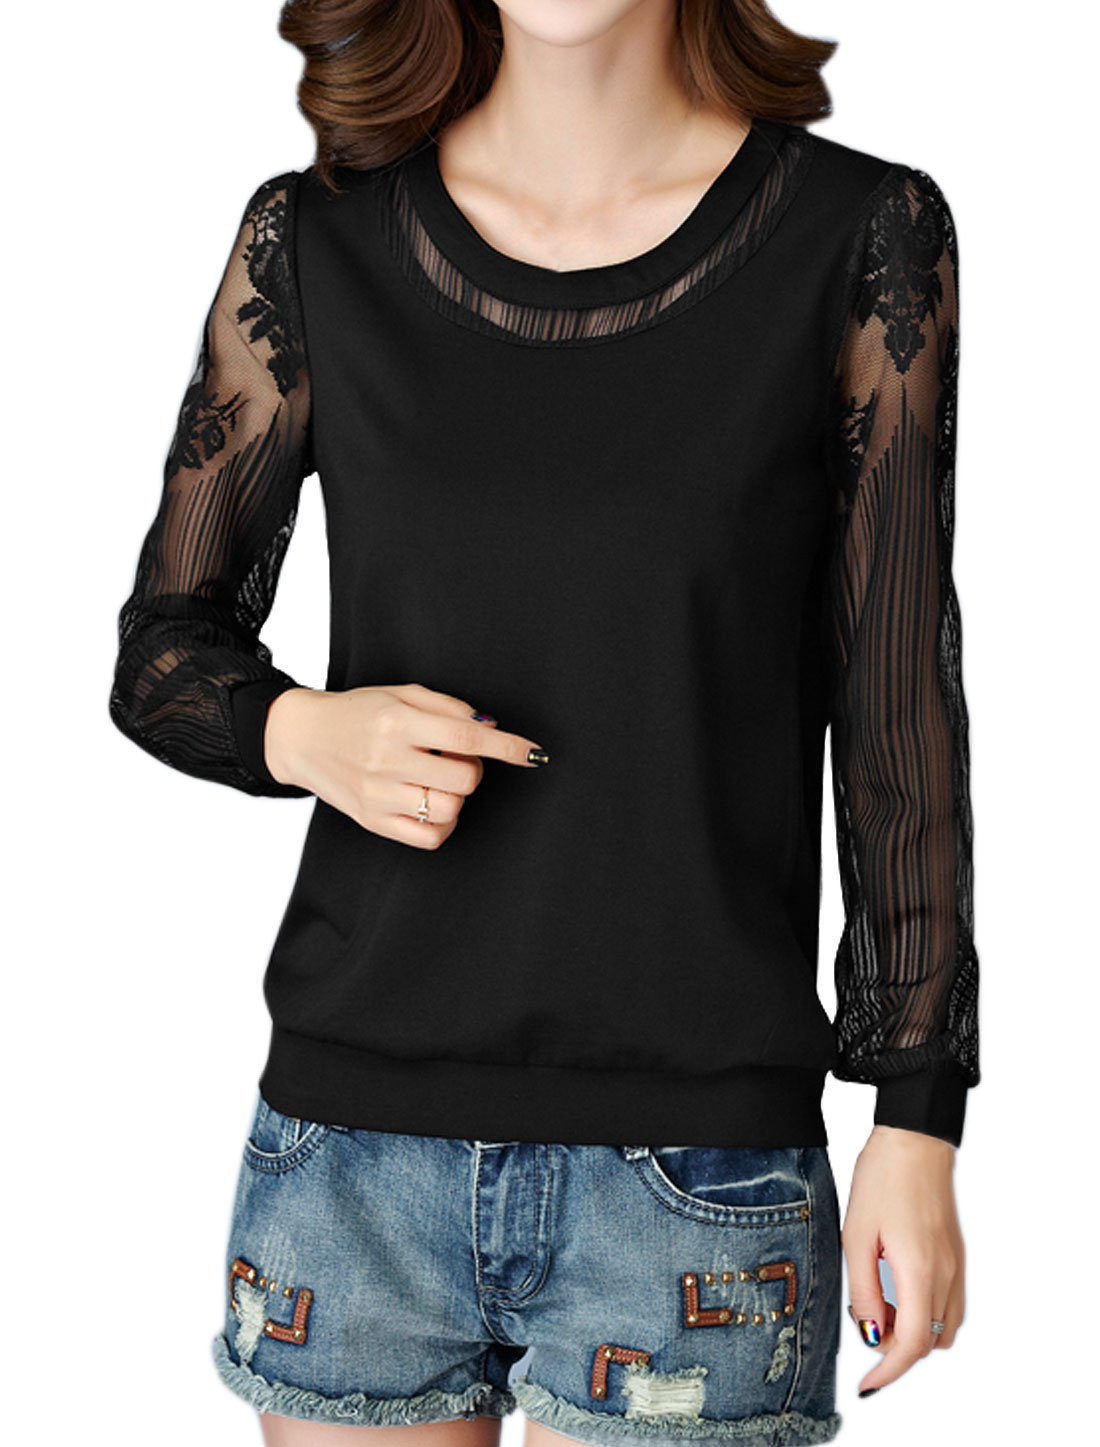 Women Scoop Neck See Through Long Sleeves Floral Lace Panel Top Black M